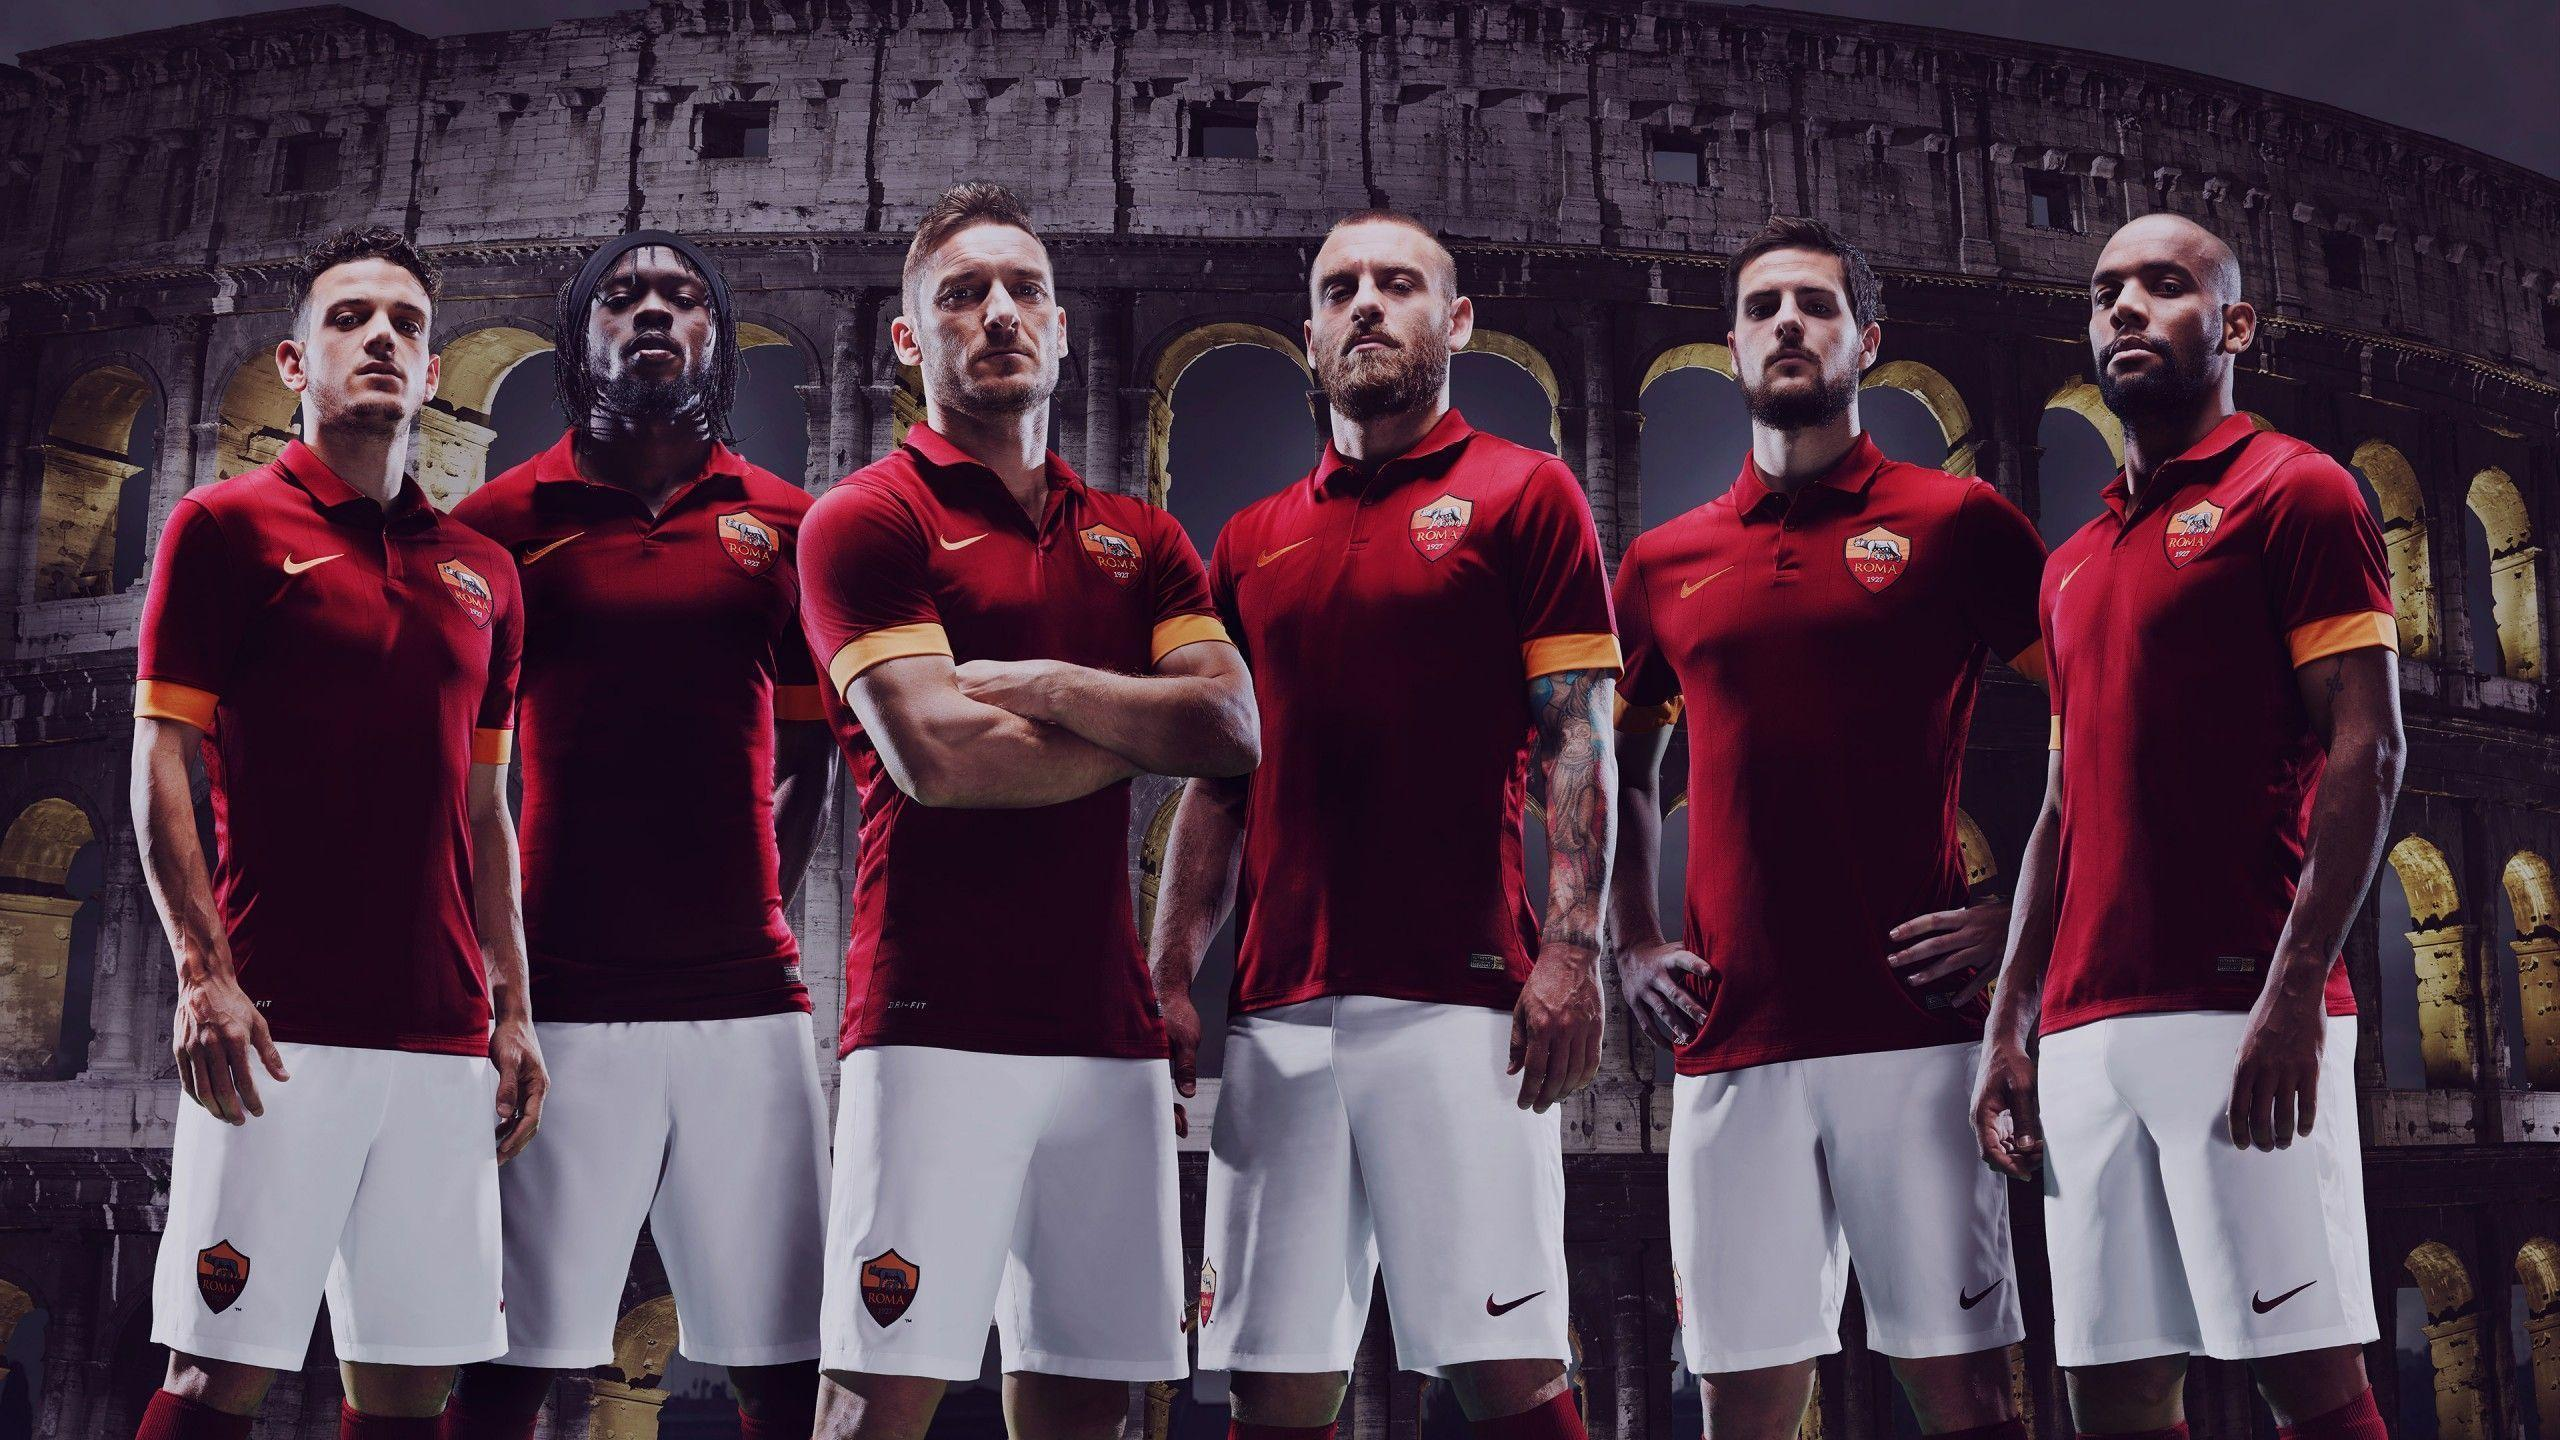 AS Roma 2014 2015 Nike Jersey Home Kit Wallpaper Wide or HD